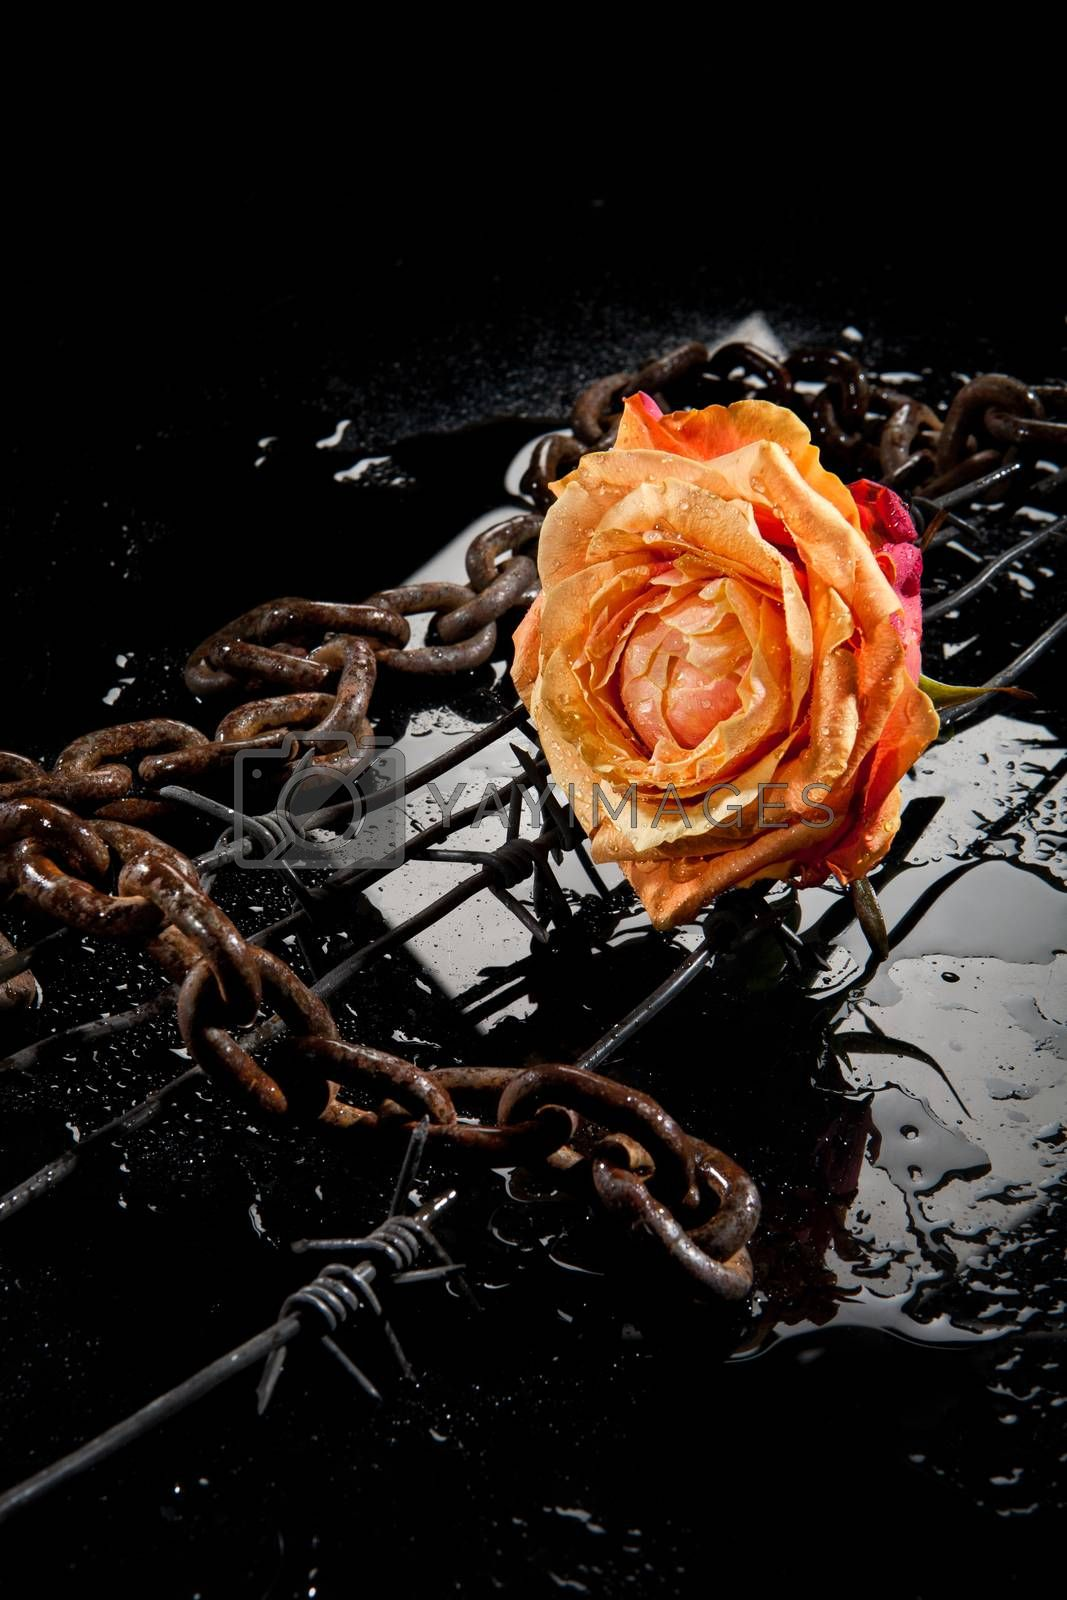 Rose, Chain And Barbed Wire by Fotoskat